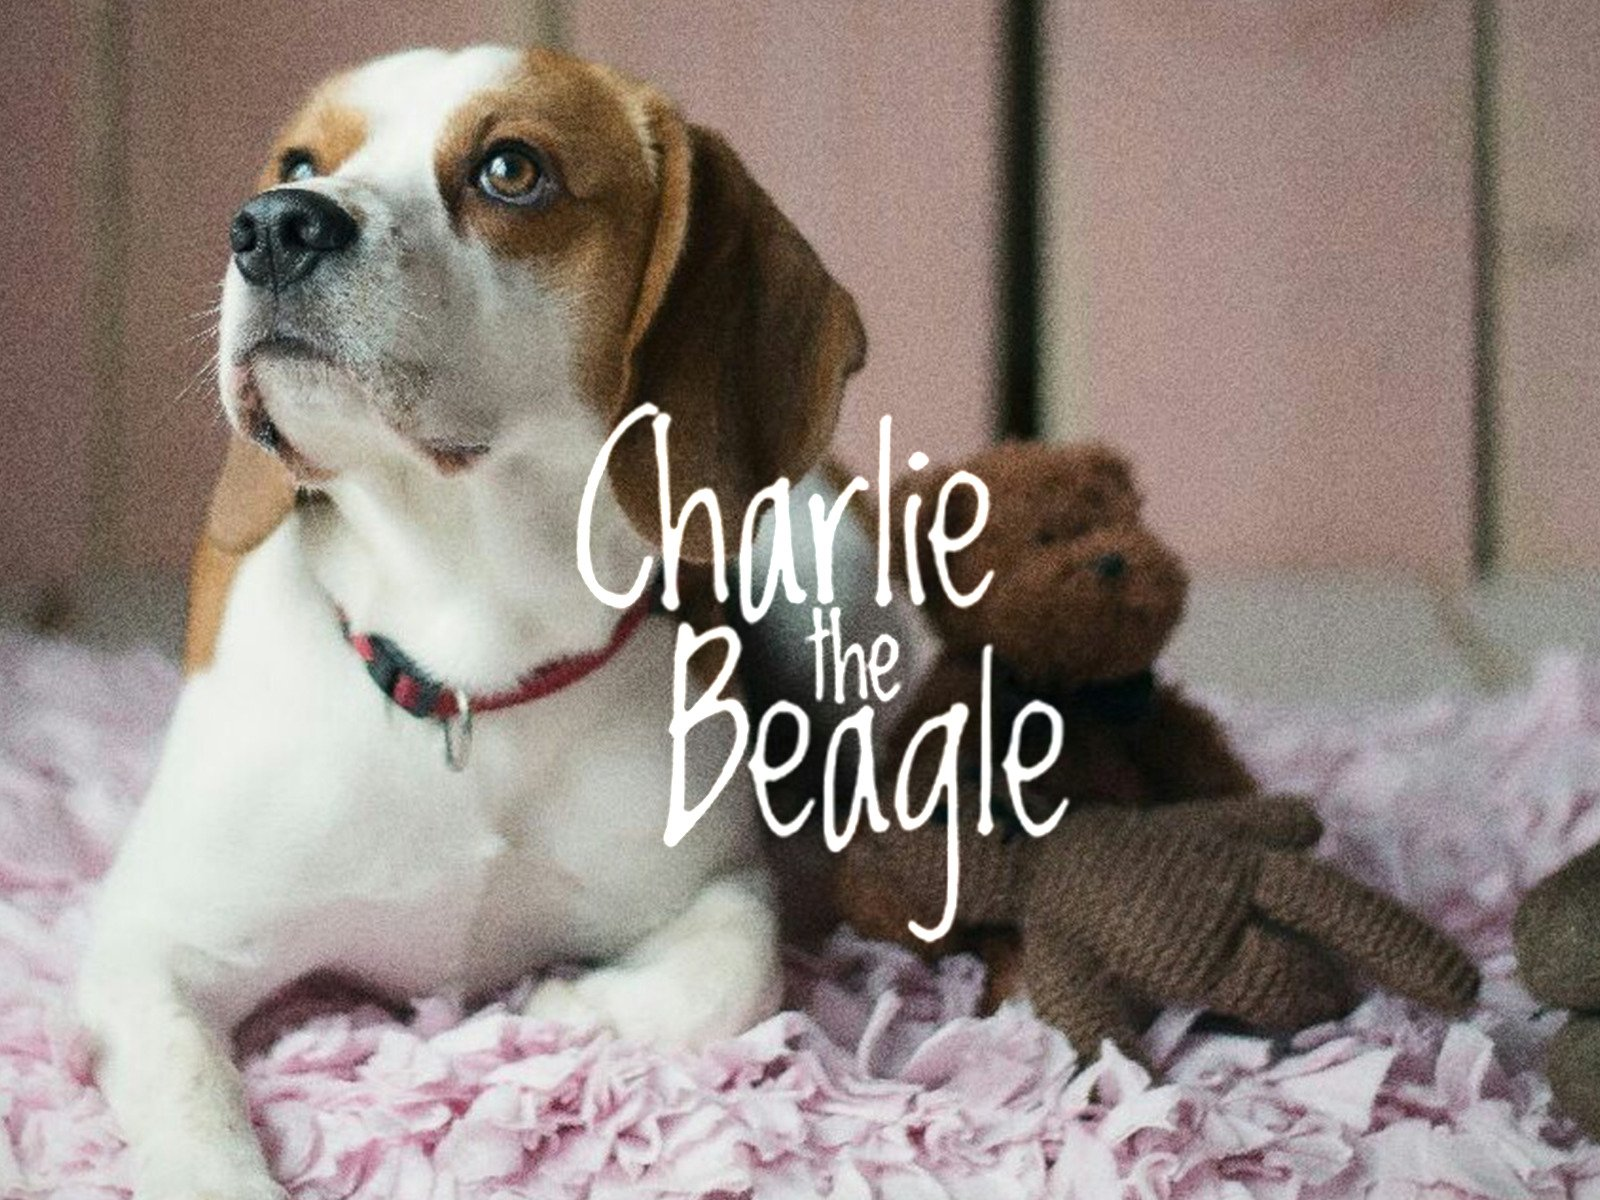 Charlie The Beagle - Season 1